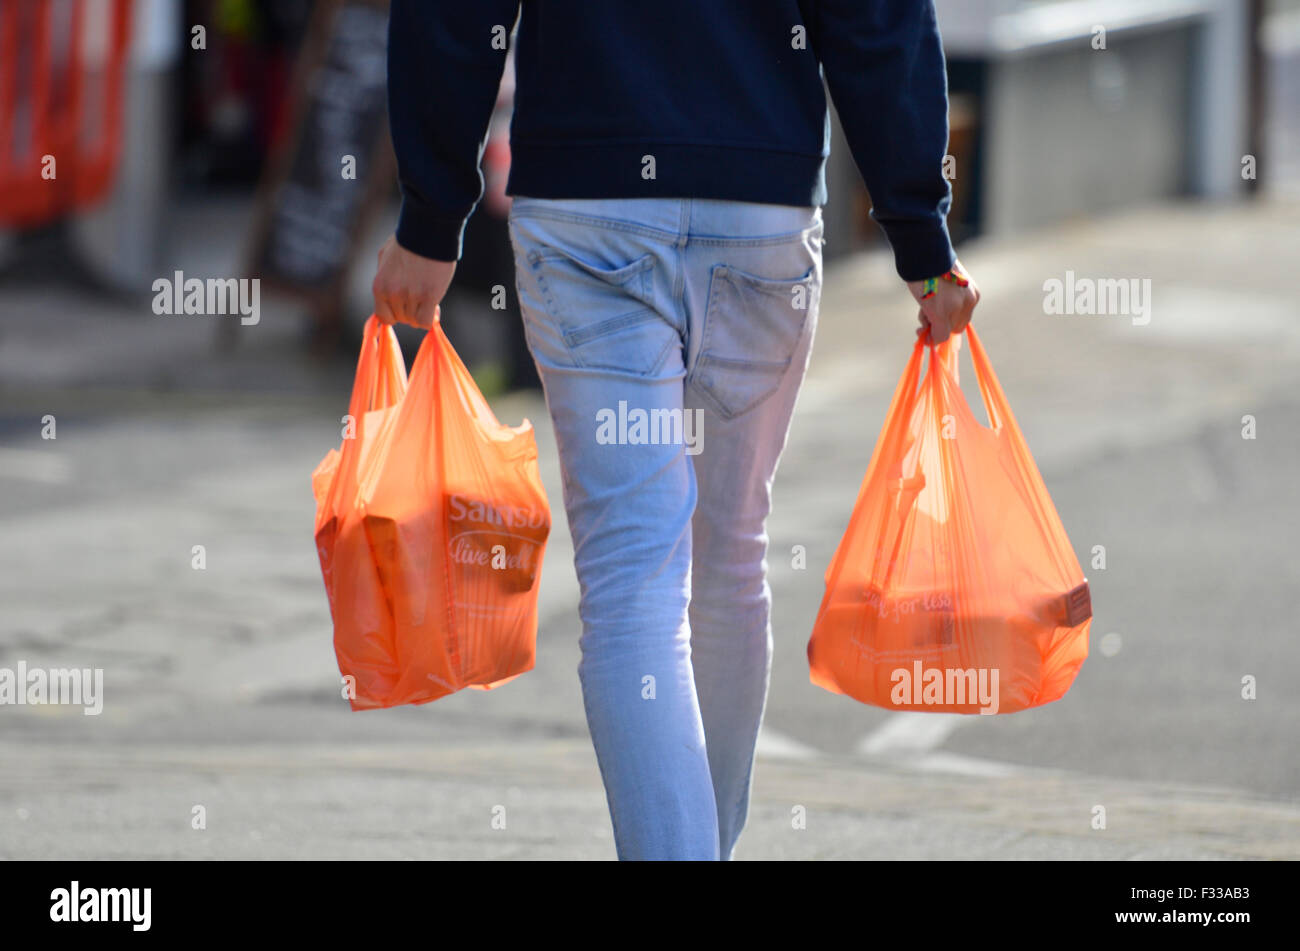 Bristol, UK. 29th Sep, 2015. All users of plastic bags for collecting their shopping will be charged 5p from Next - Stock Image